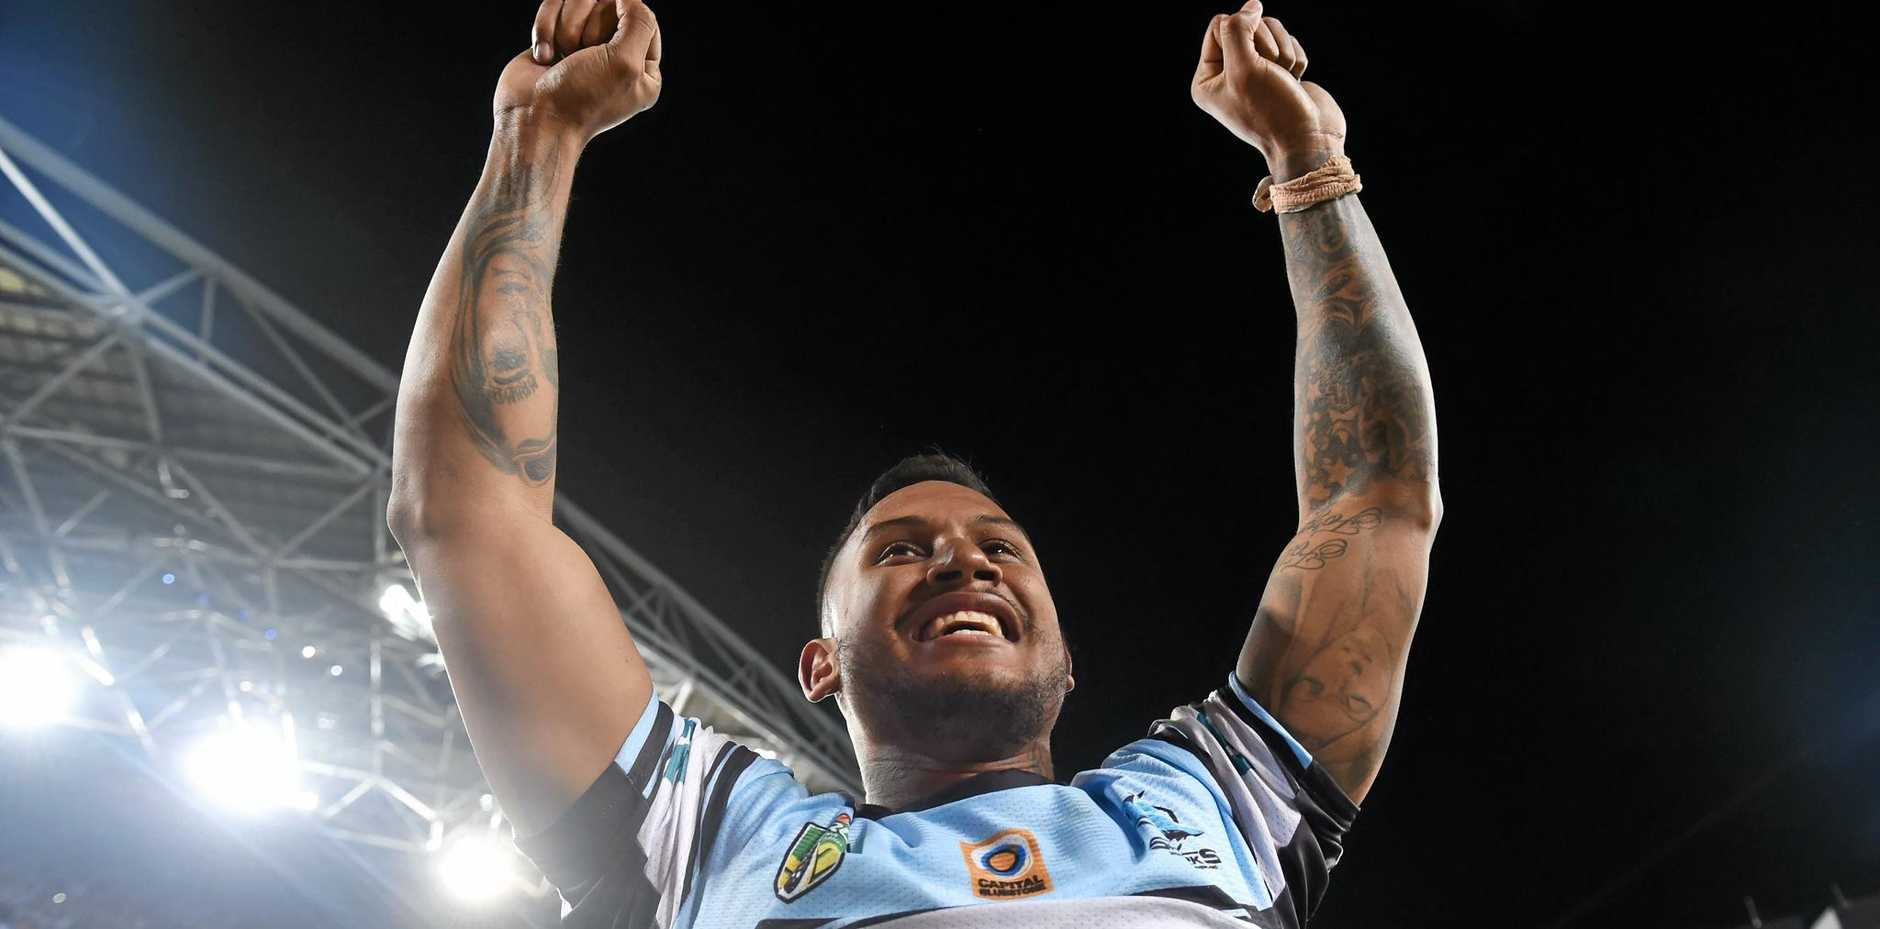 Ben Barba of the Sharks celebrates their win in the NRL grand final.